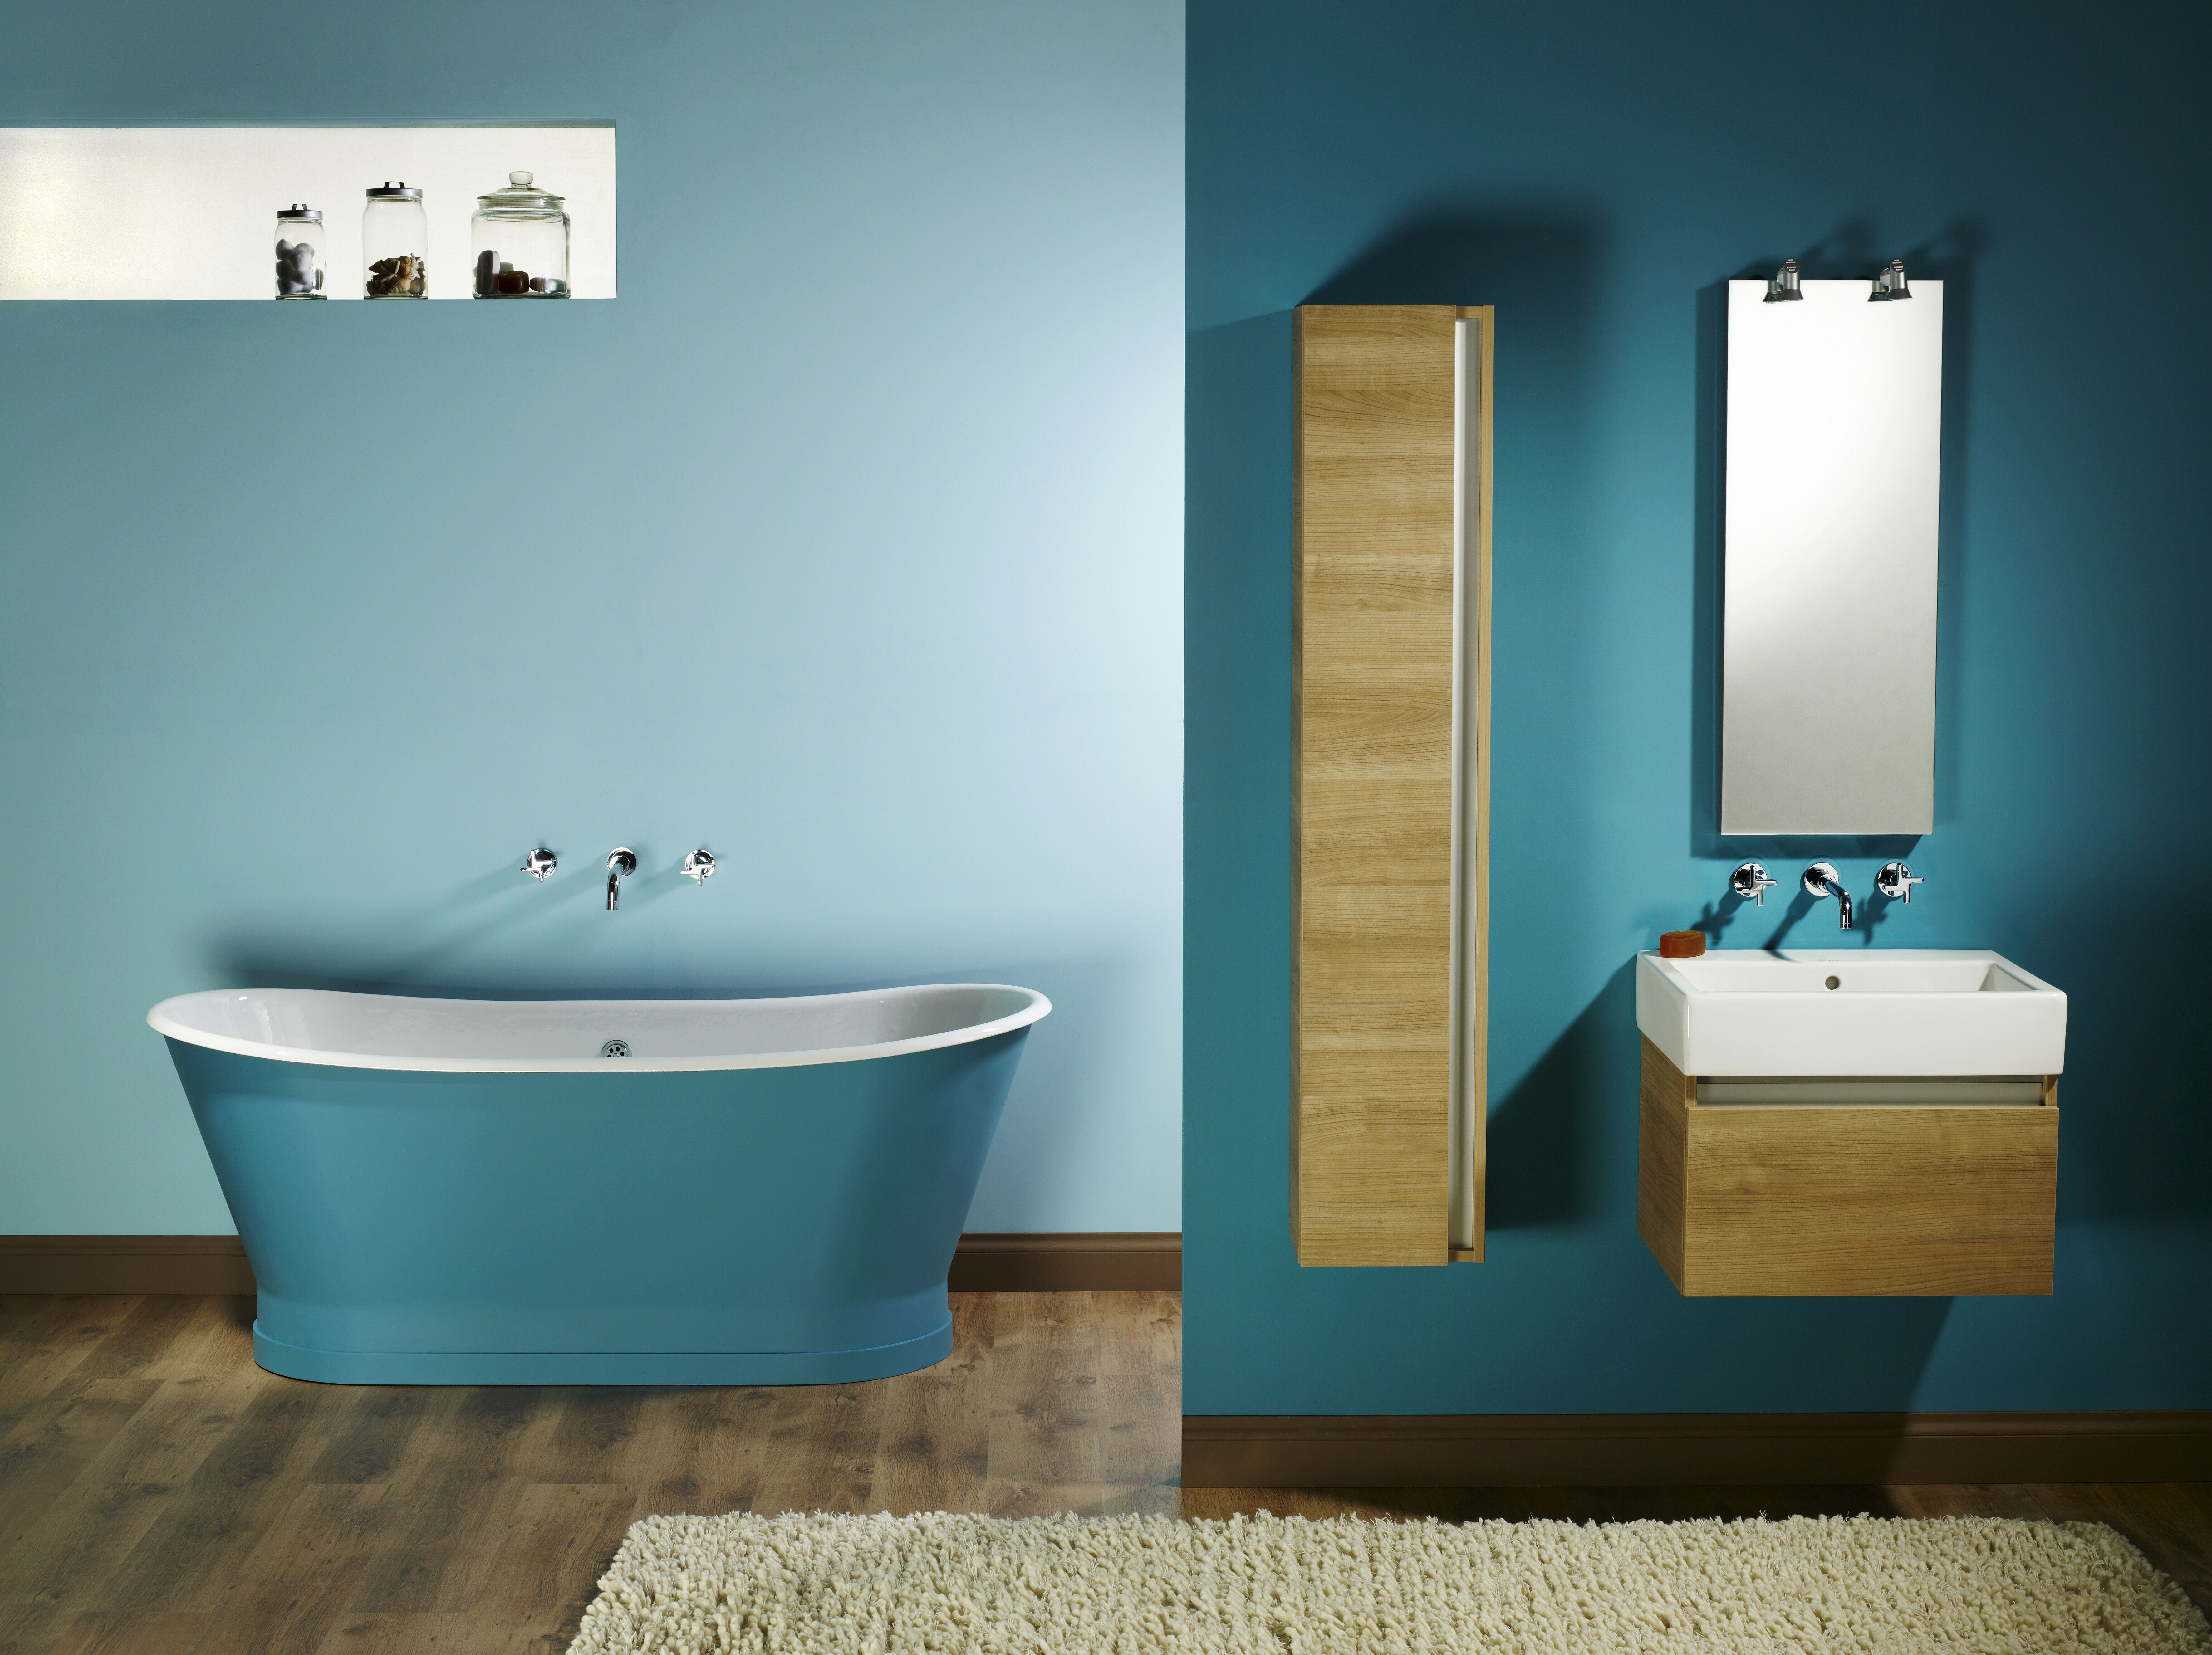 Epoca, Aston Matthews | Bathroom design, Spa style ...